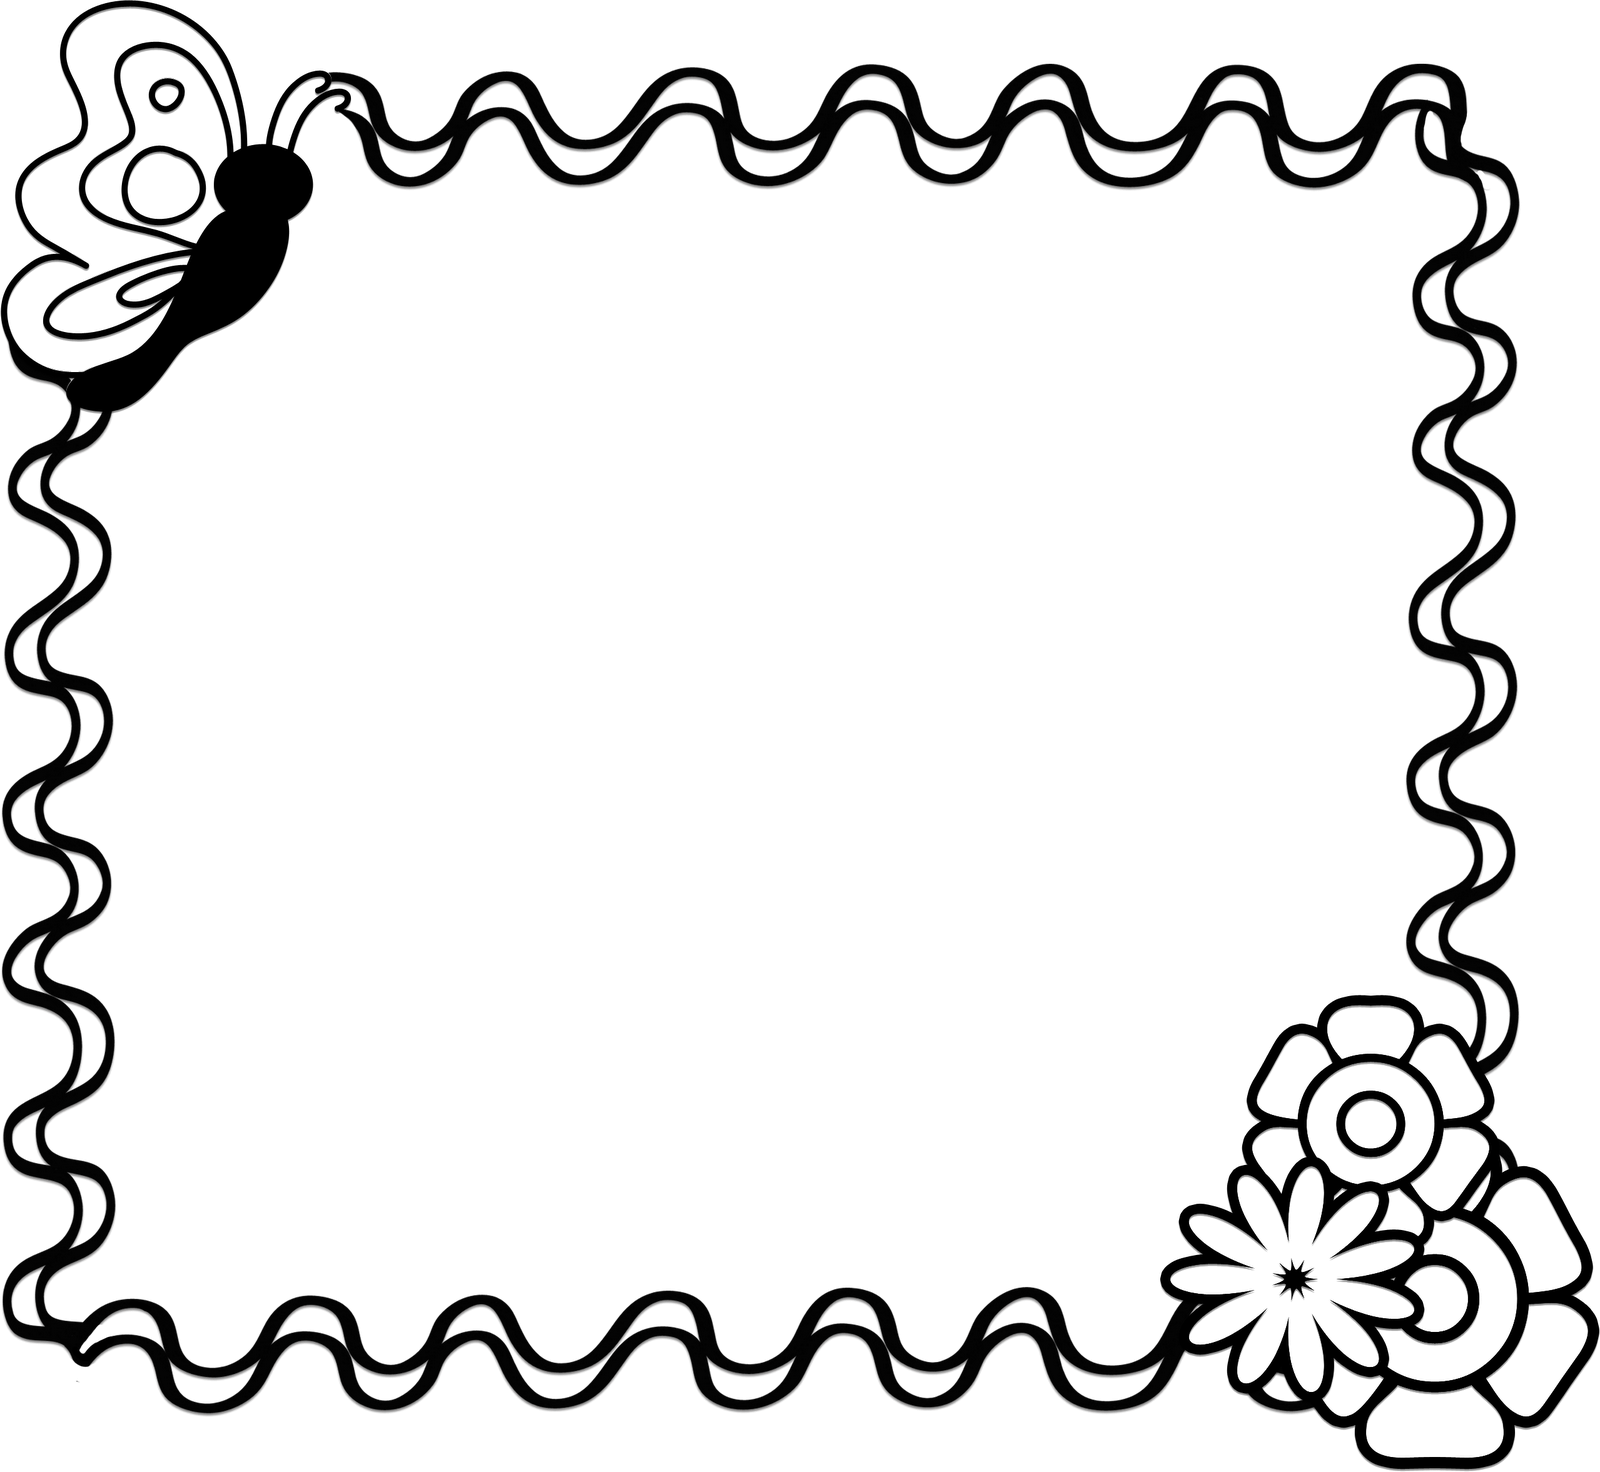 Black and white snowflake clipart border image transparent download flower black and white flower clipart black and white border 2 ... image transparent download